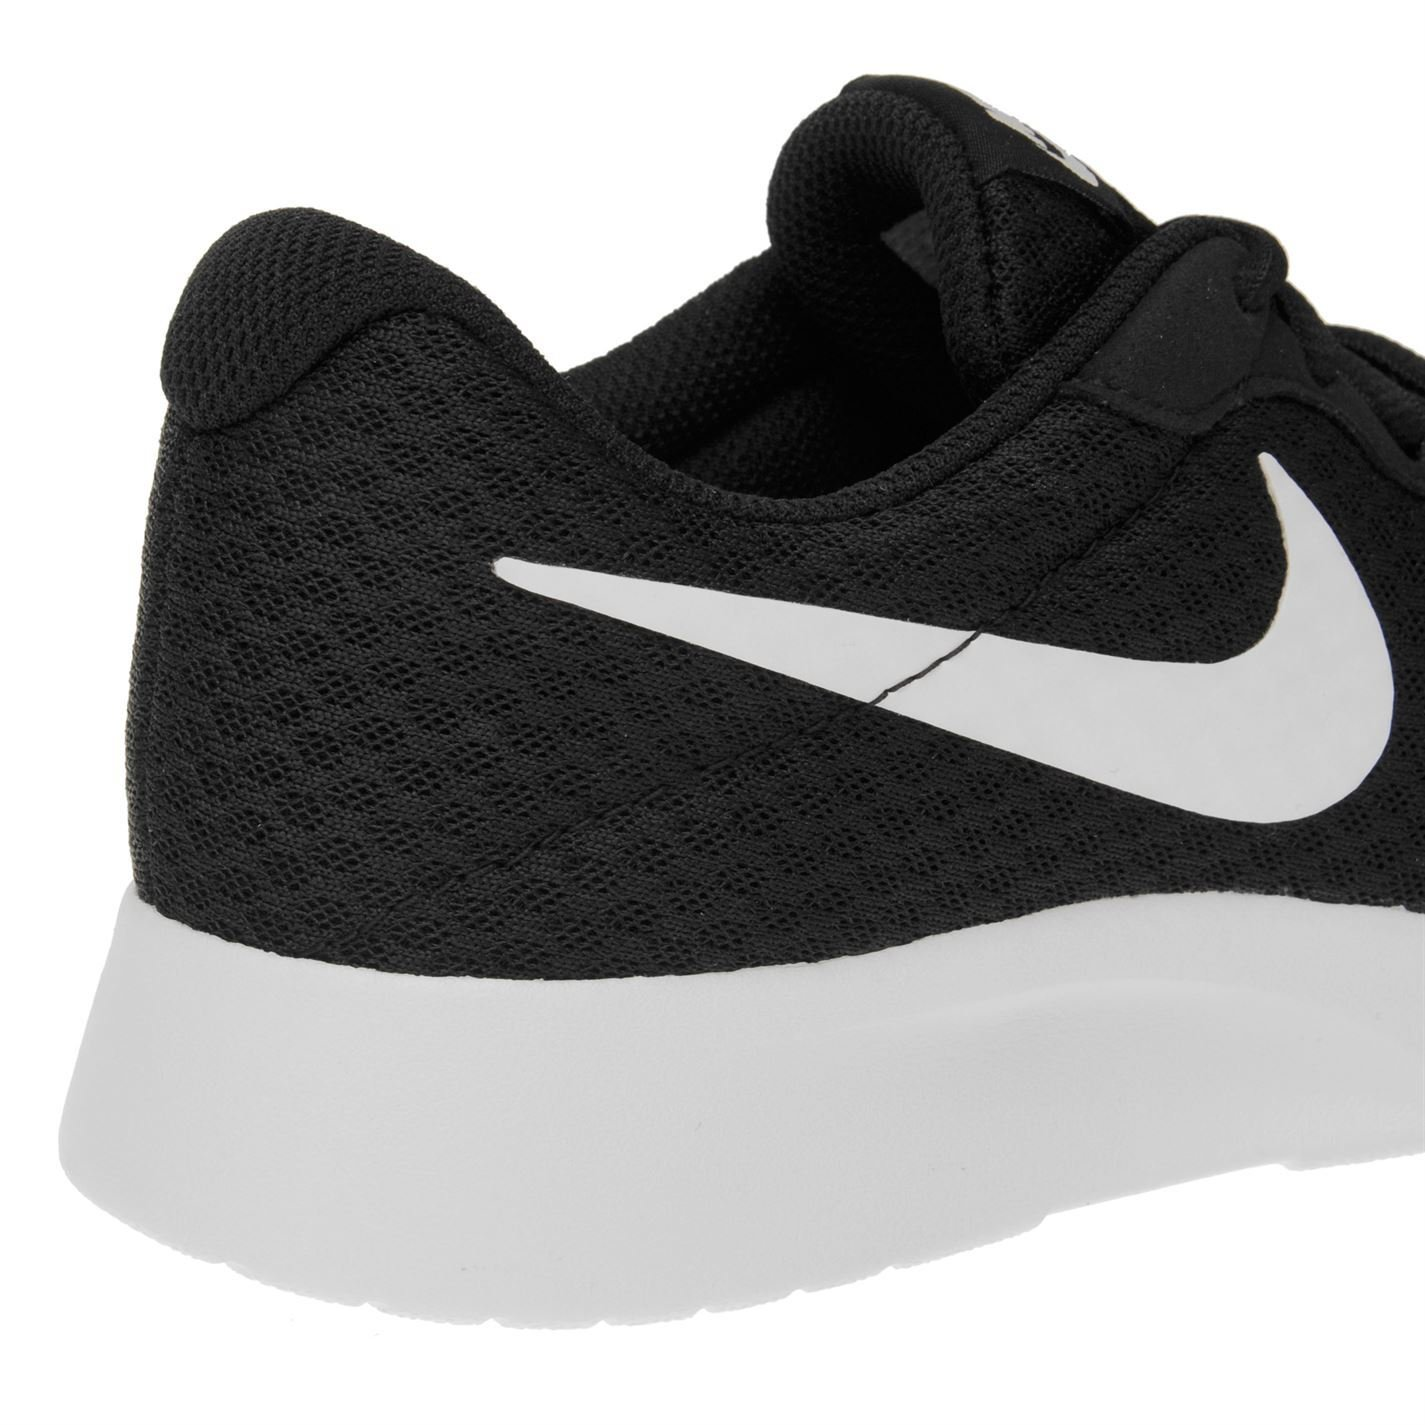 new arrival cb5f4 8ad1e ... best nike tanjun training shoes womens black white gym fitness trainers  sneakers amazon sports outdoors 1b23a